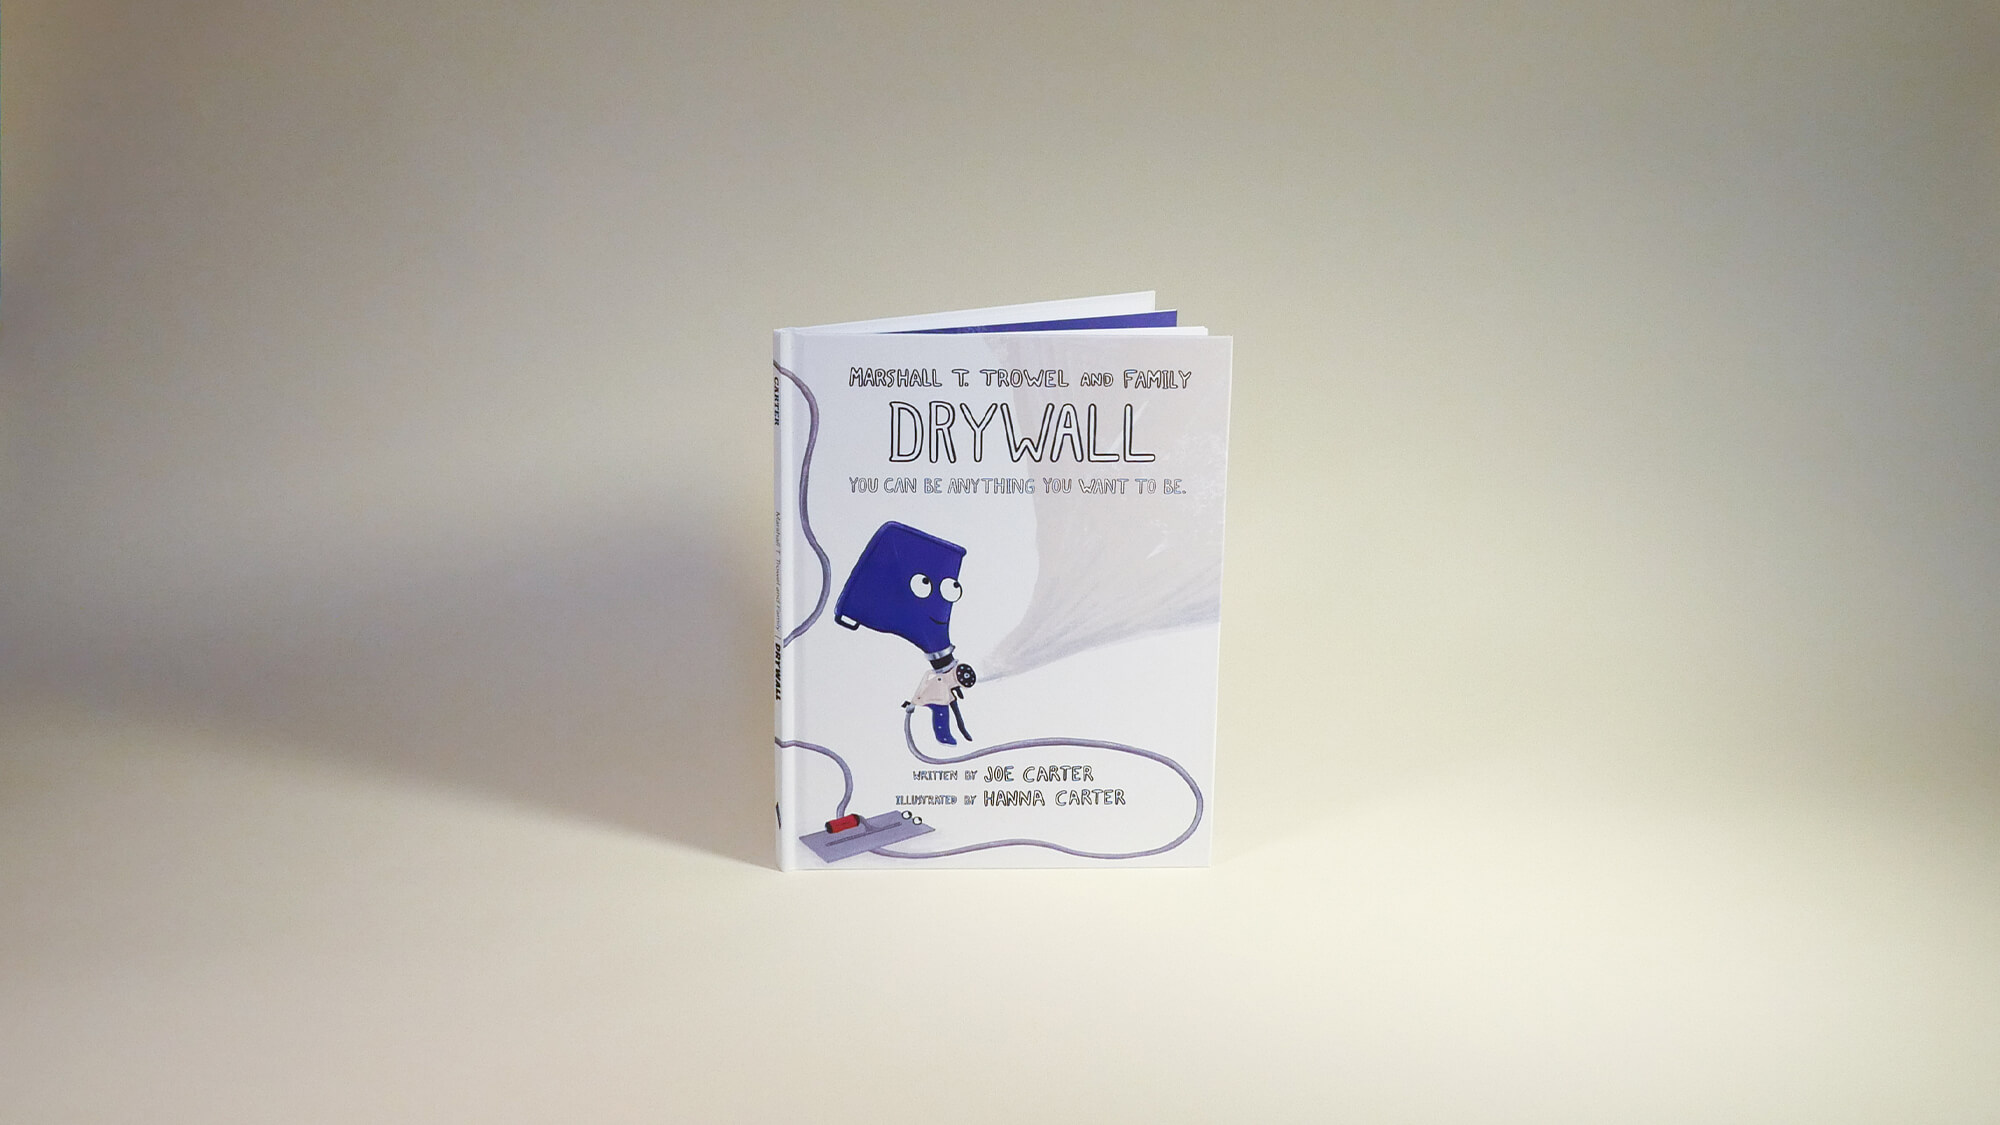 MTOWN_BOOKS-gallery-2000x1125_0001s_0003_DRYWALL-cover_upright1